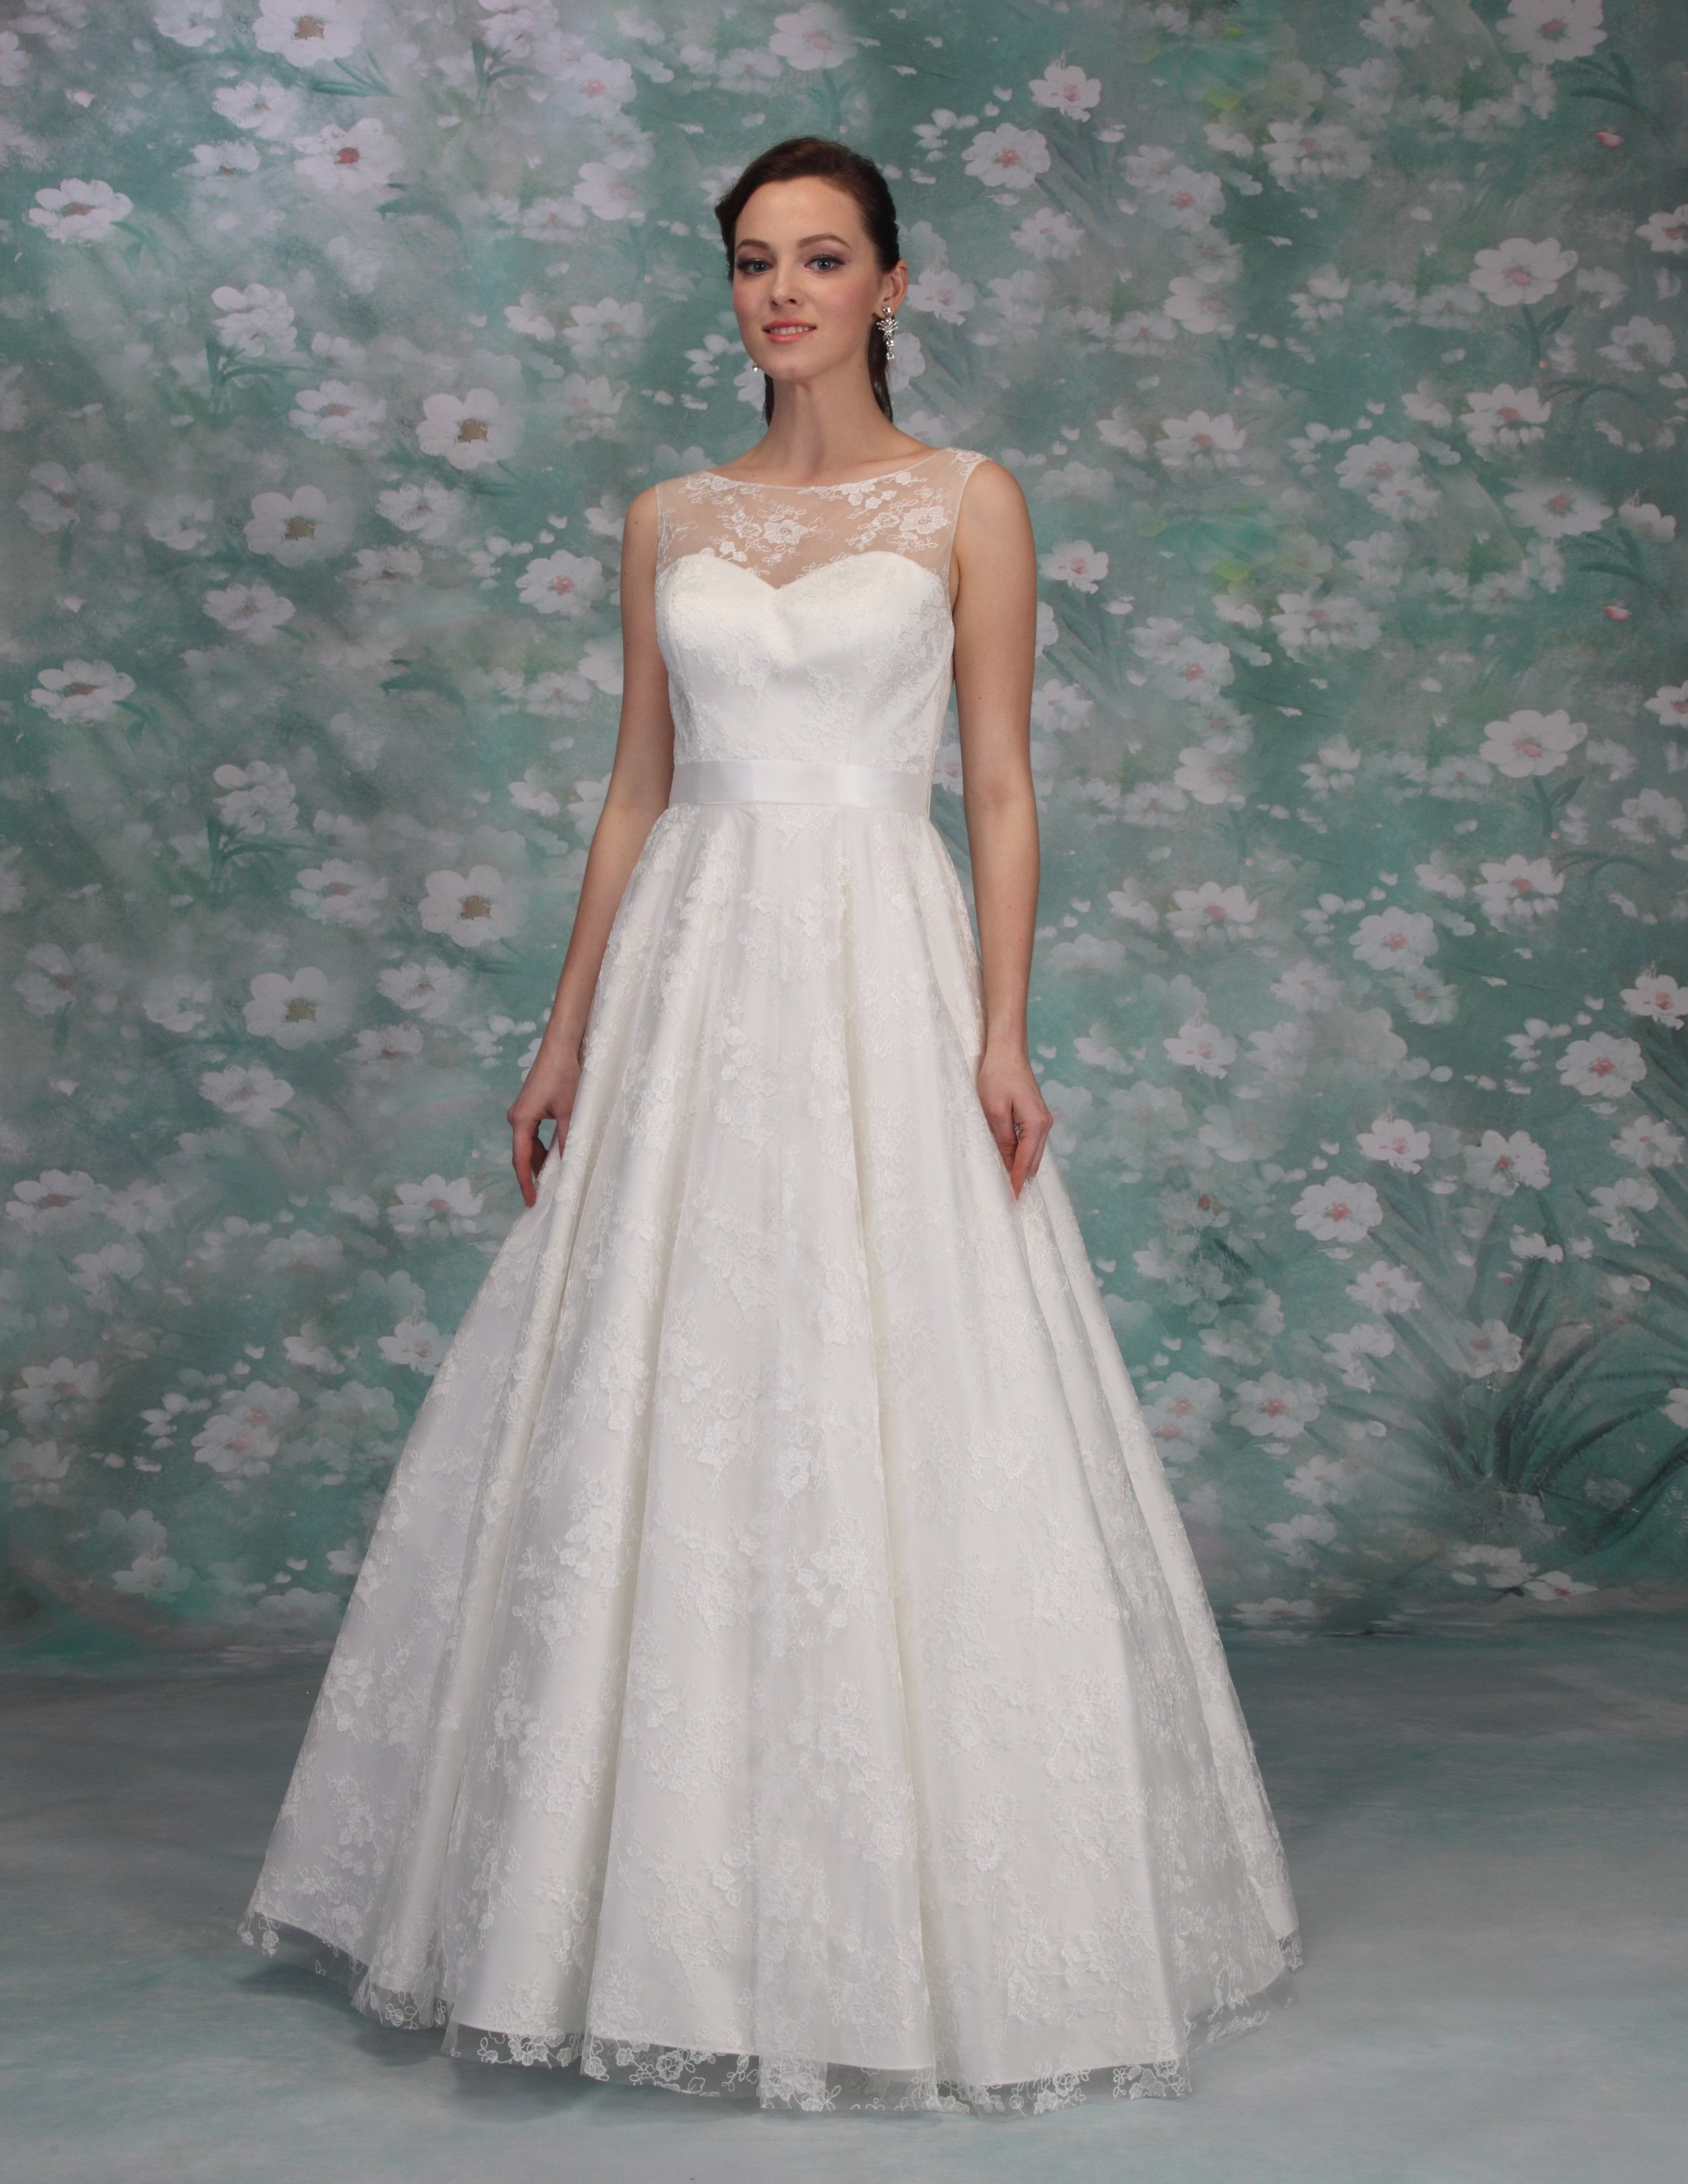 Classic Princess Gown By Finesse Bridal Wear In Listowel Co Kerry PrincessBride